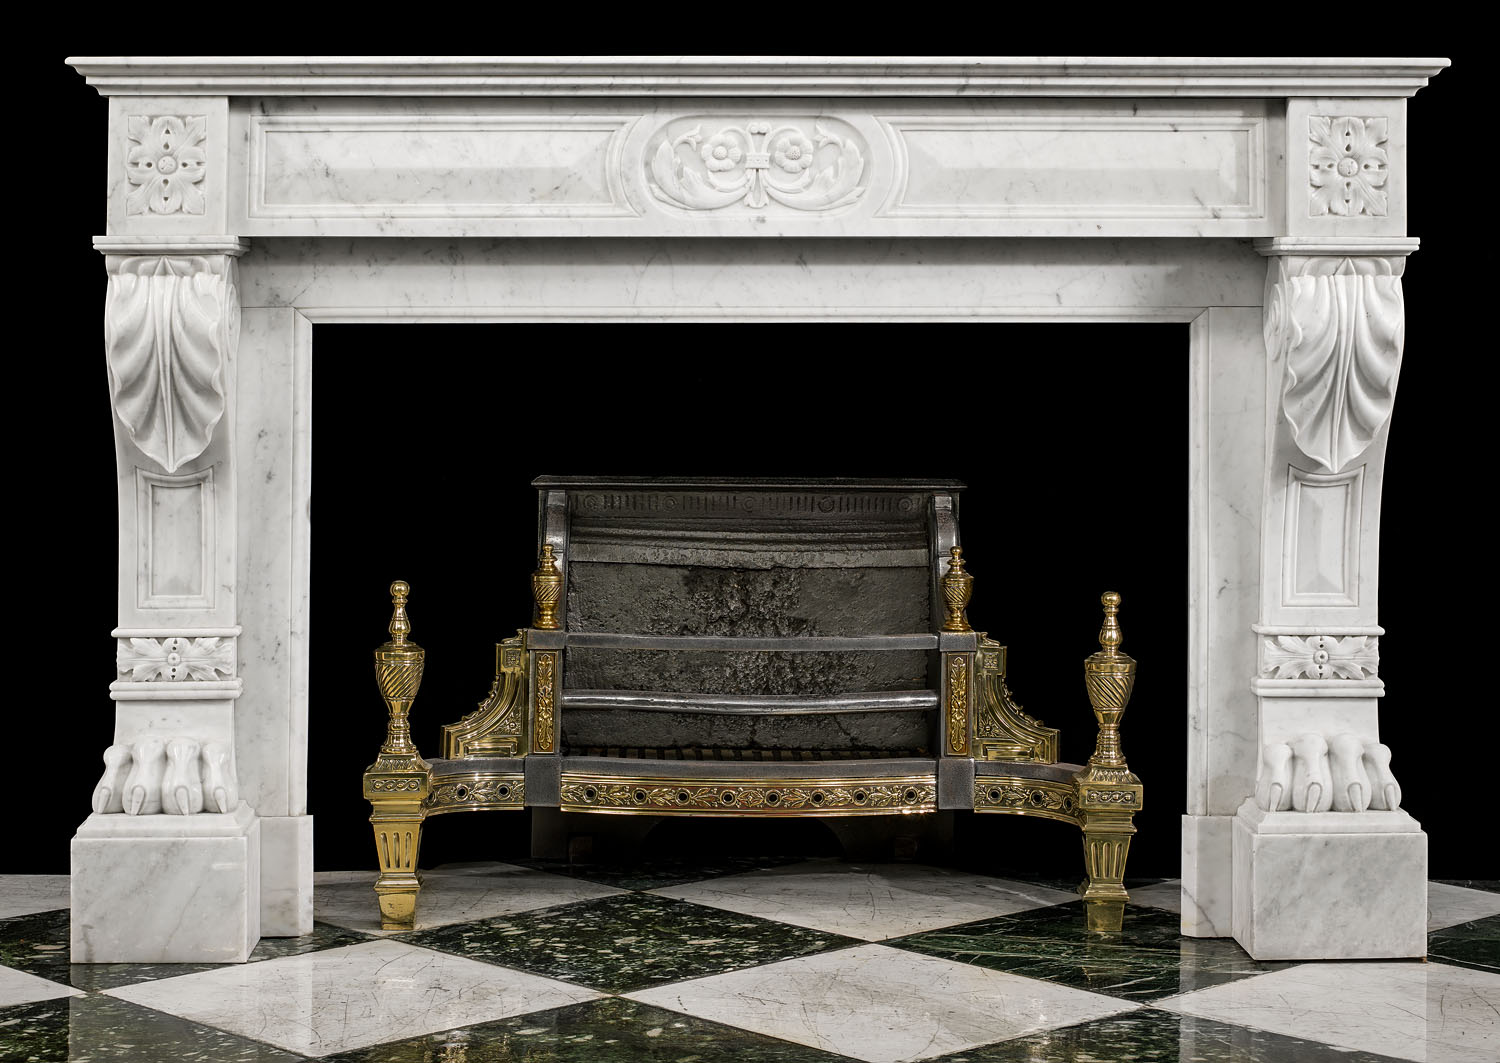 An Antique Louis XVI French Regency Carrara Marble Fireplace Surround